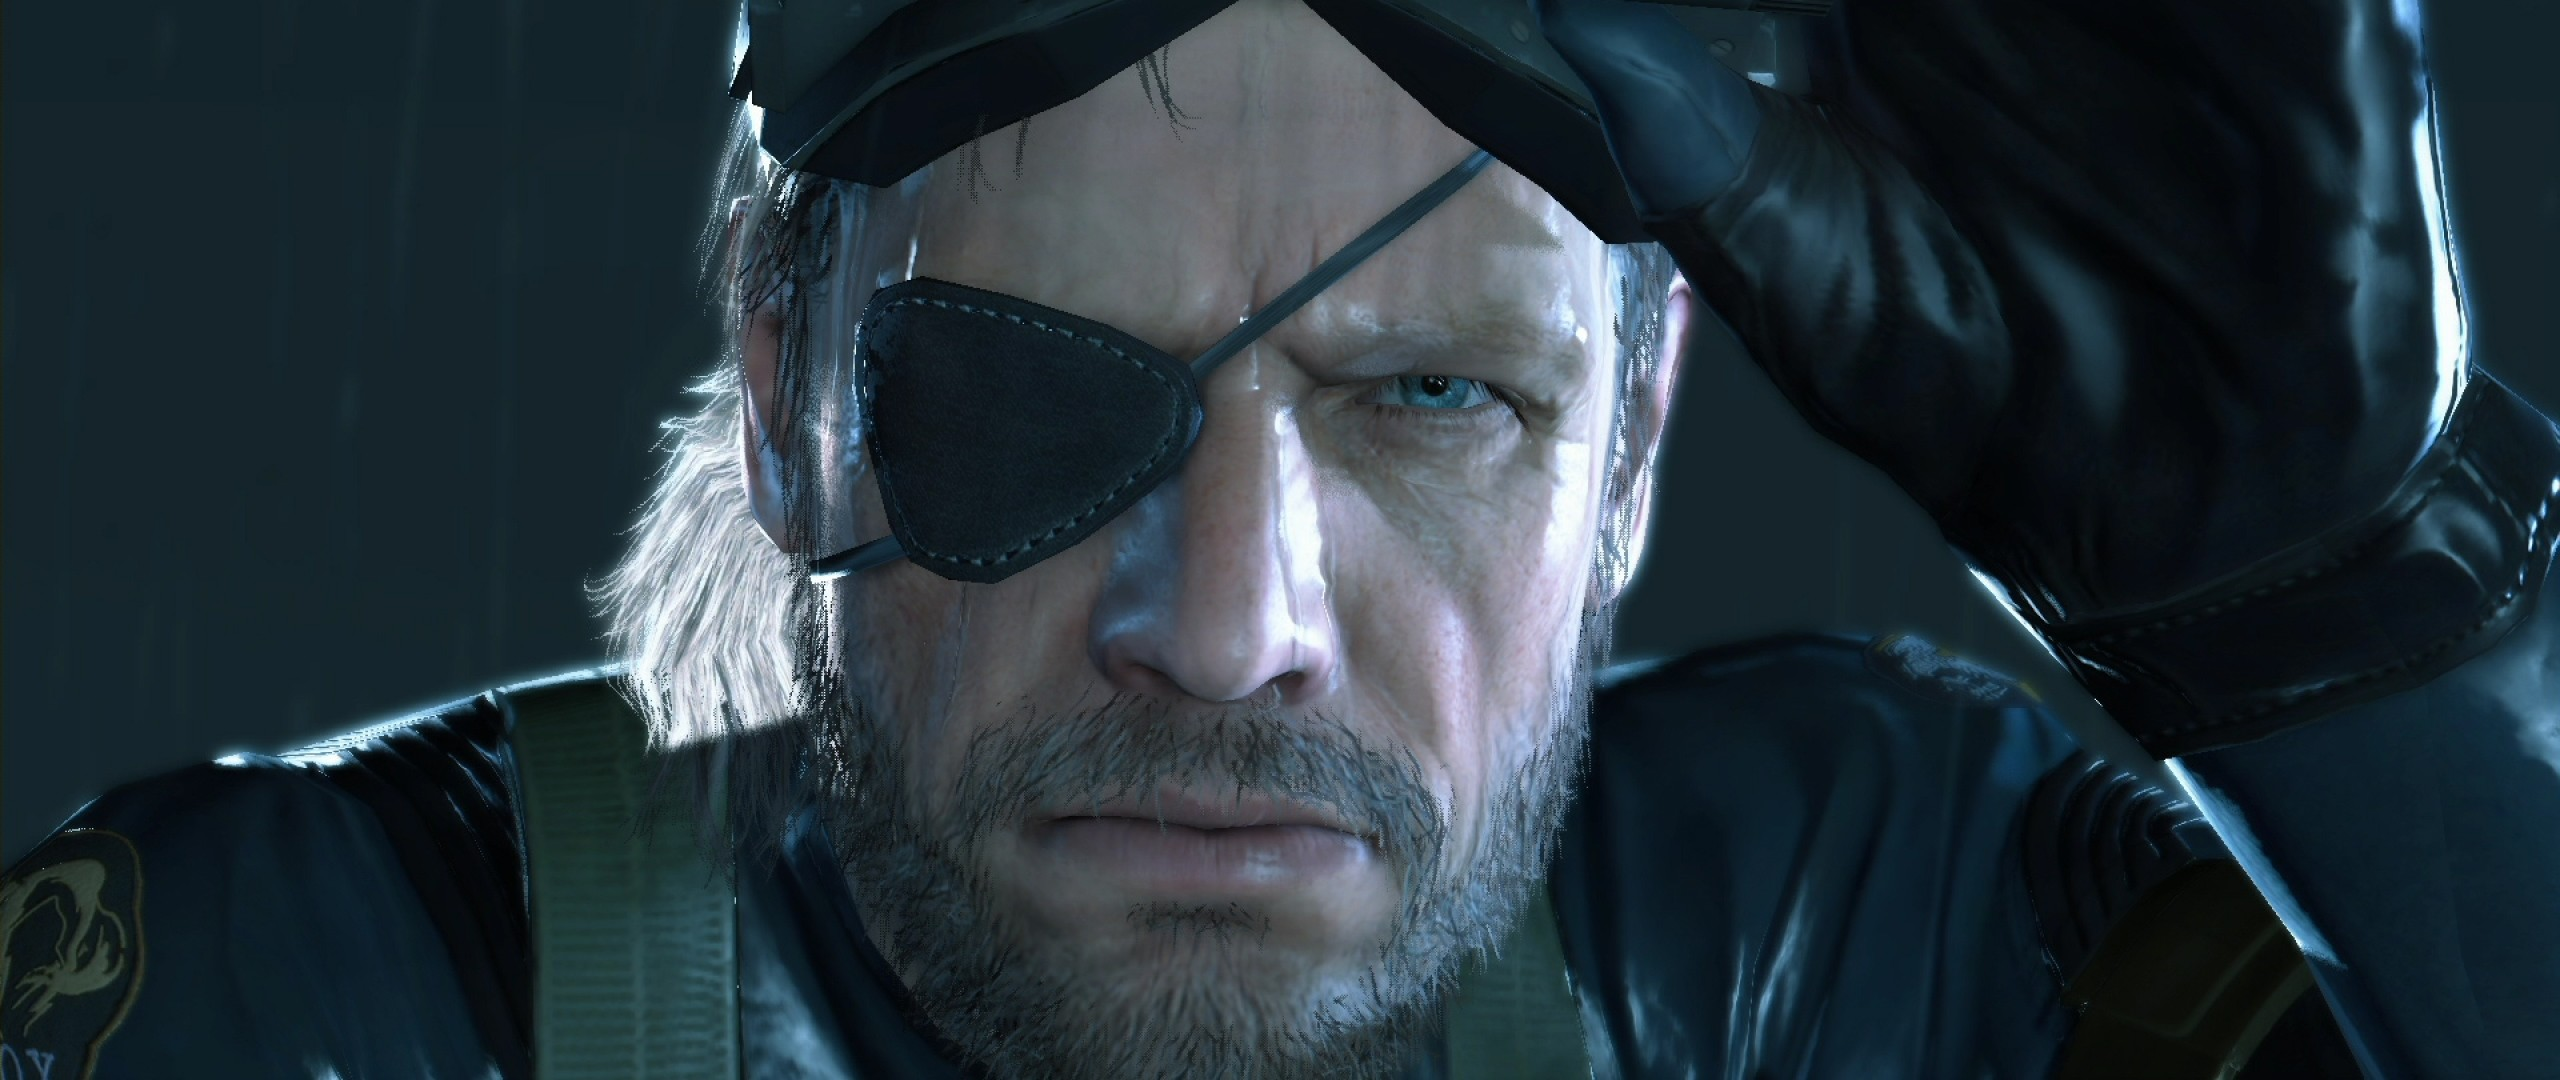 Preview wallpaper metal gear solid v ground zeroes, action, announcement  2560×1080